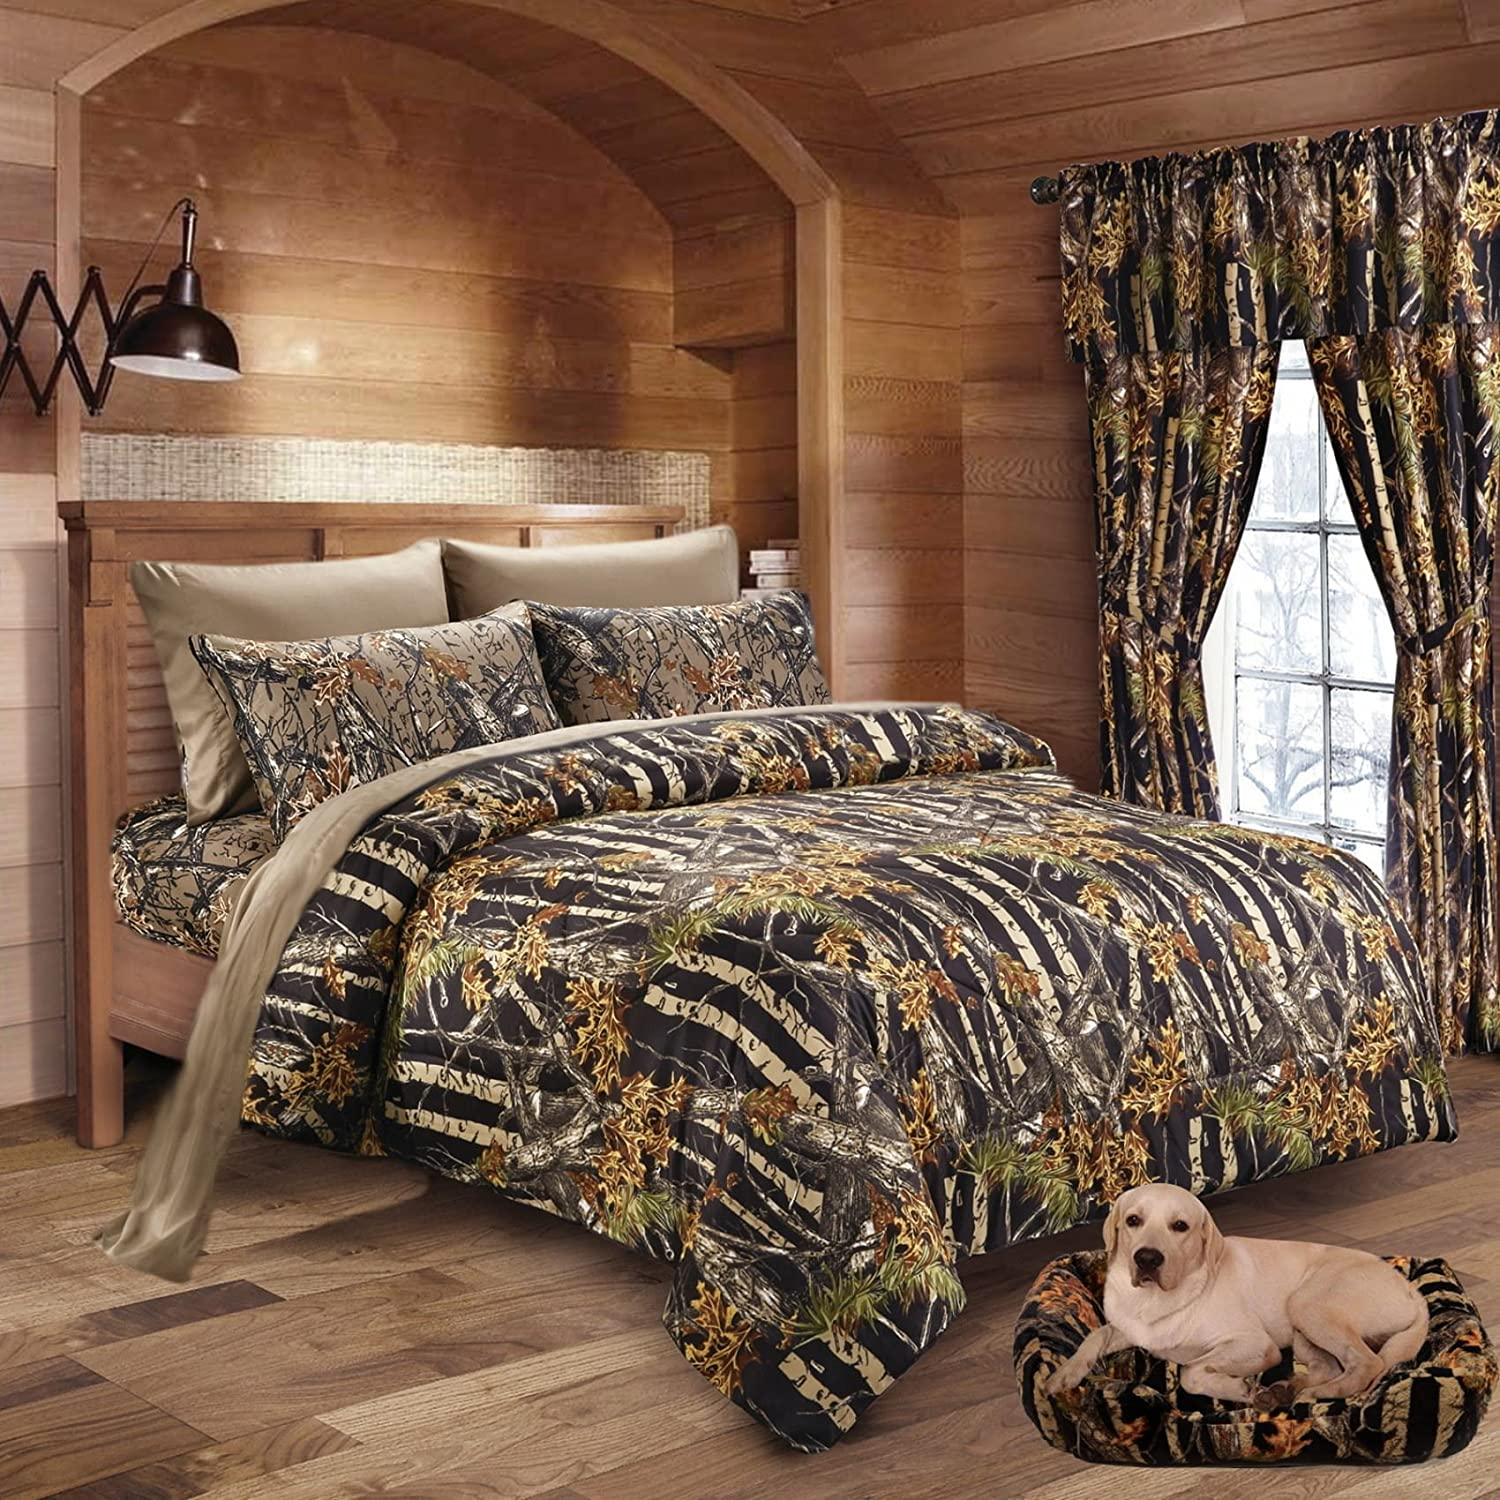 20 Lakes Woodland Hunter Camo Comforter, Sheet, Pillowcase Set (Twin, Black & Forest)